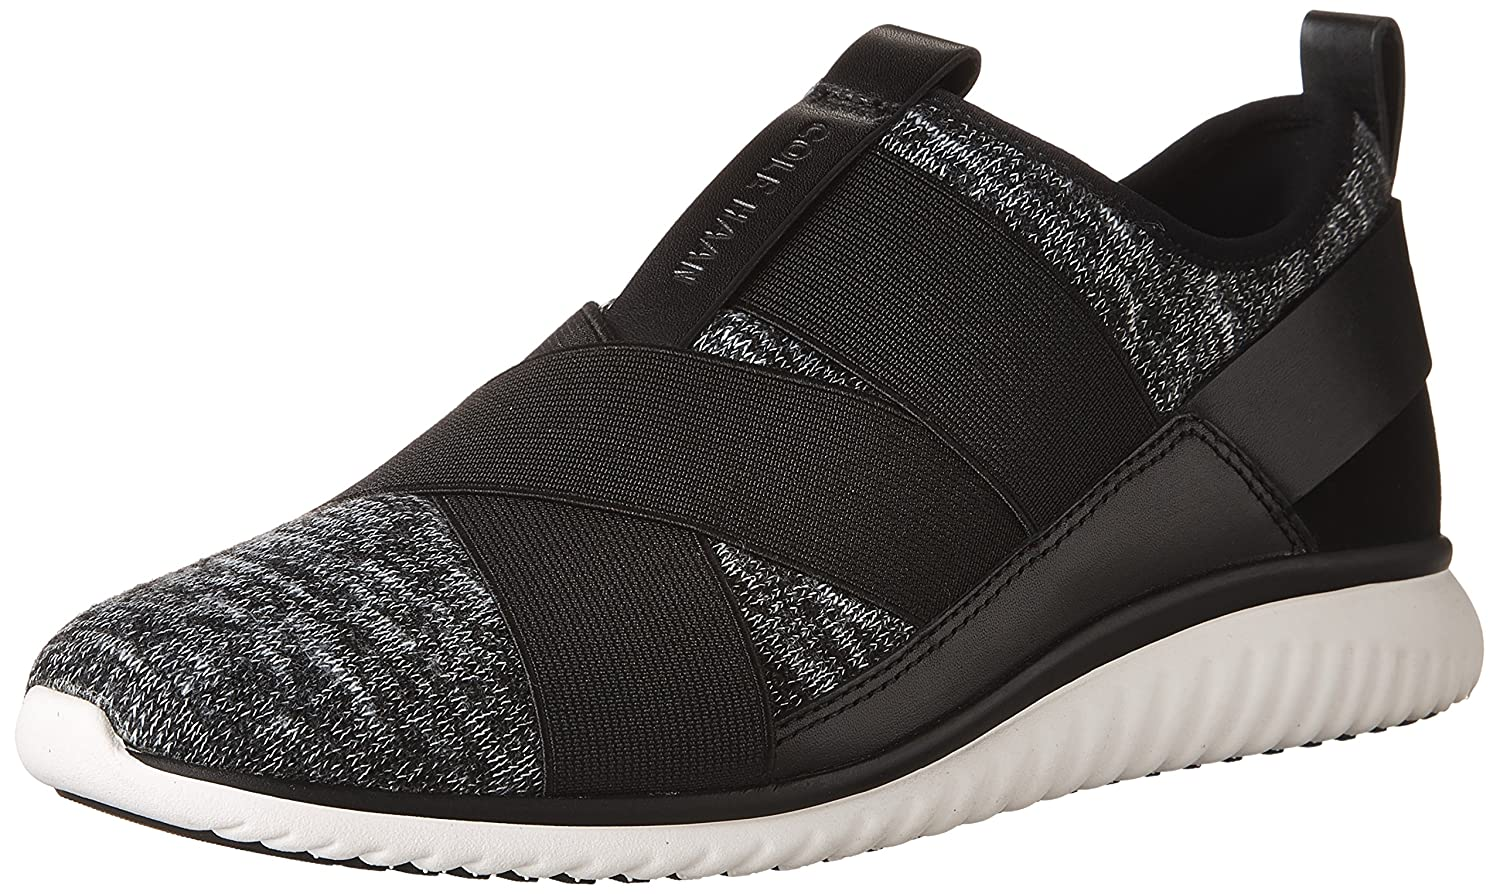 Cole Haan Studiogrand Knit Cross Strap Sneaker B06WW8YLB4 8.5 B(M) US|Black Knit